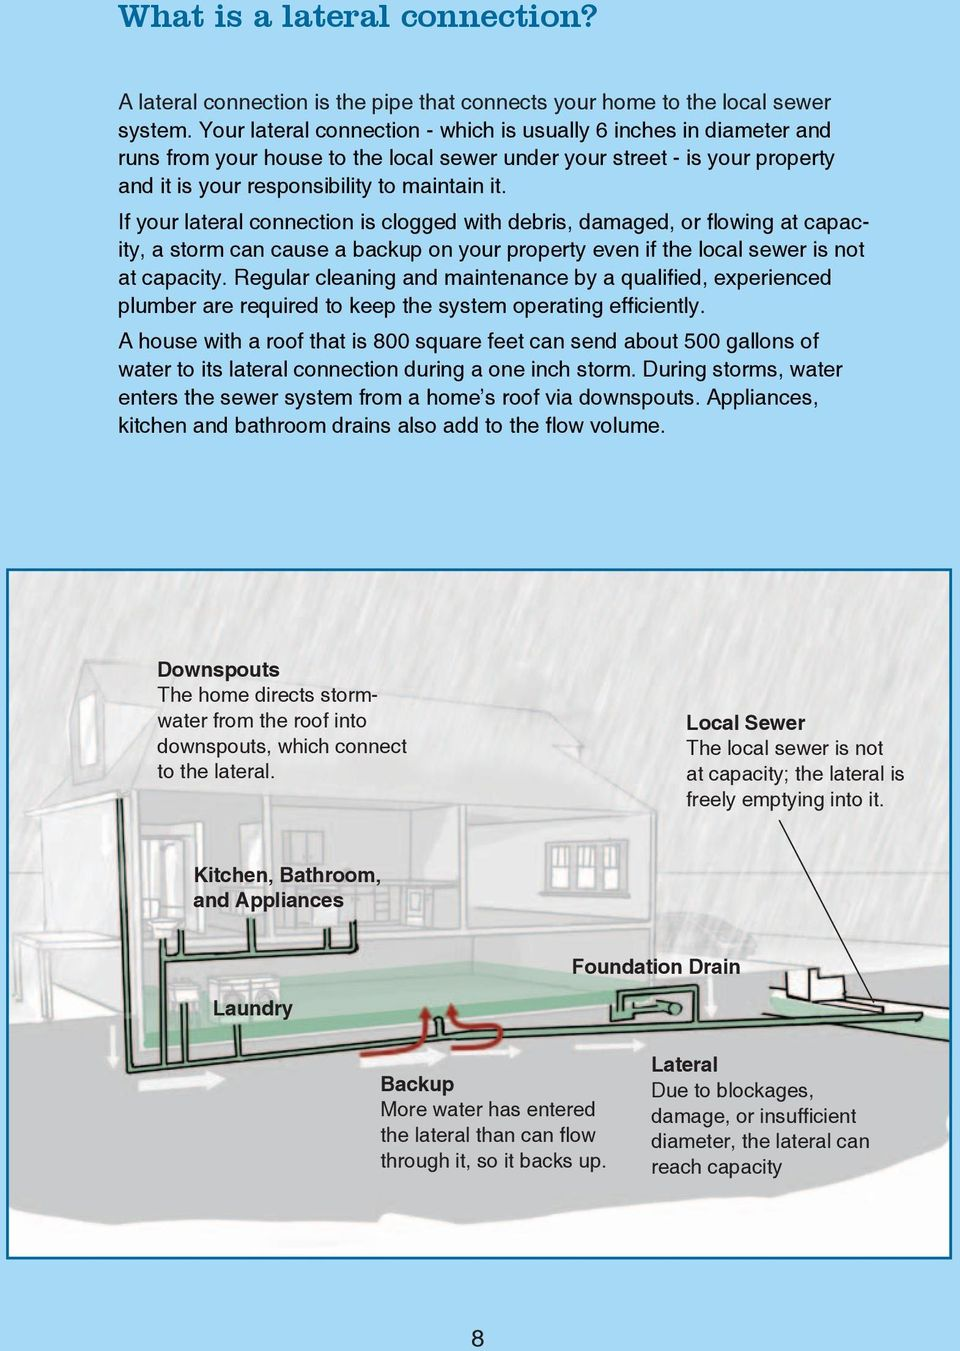 If your lateral connection is clogged with debris, damaged, or flowing at capacity, a storm can cause a backup on your property even if the local sewer is not at capacity.